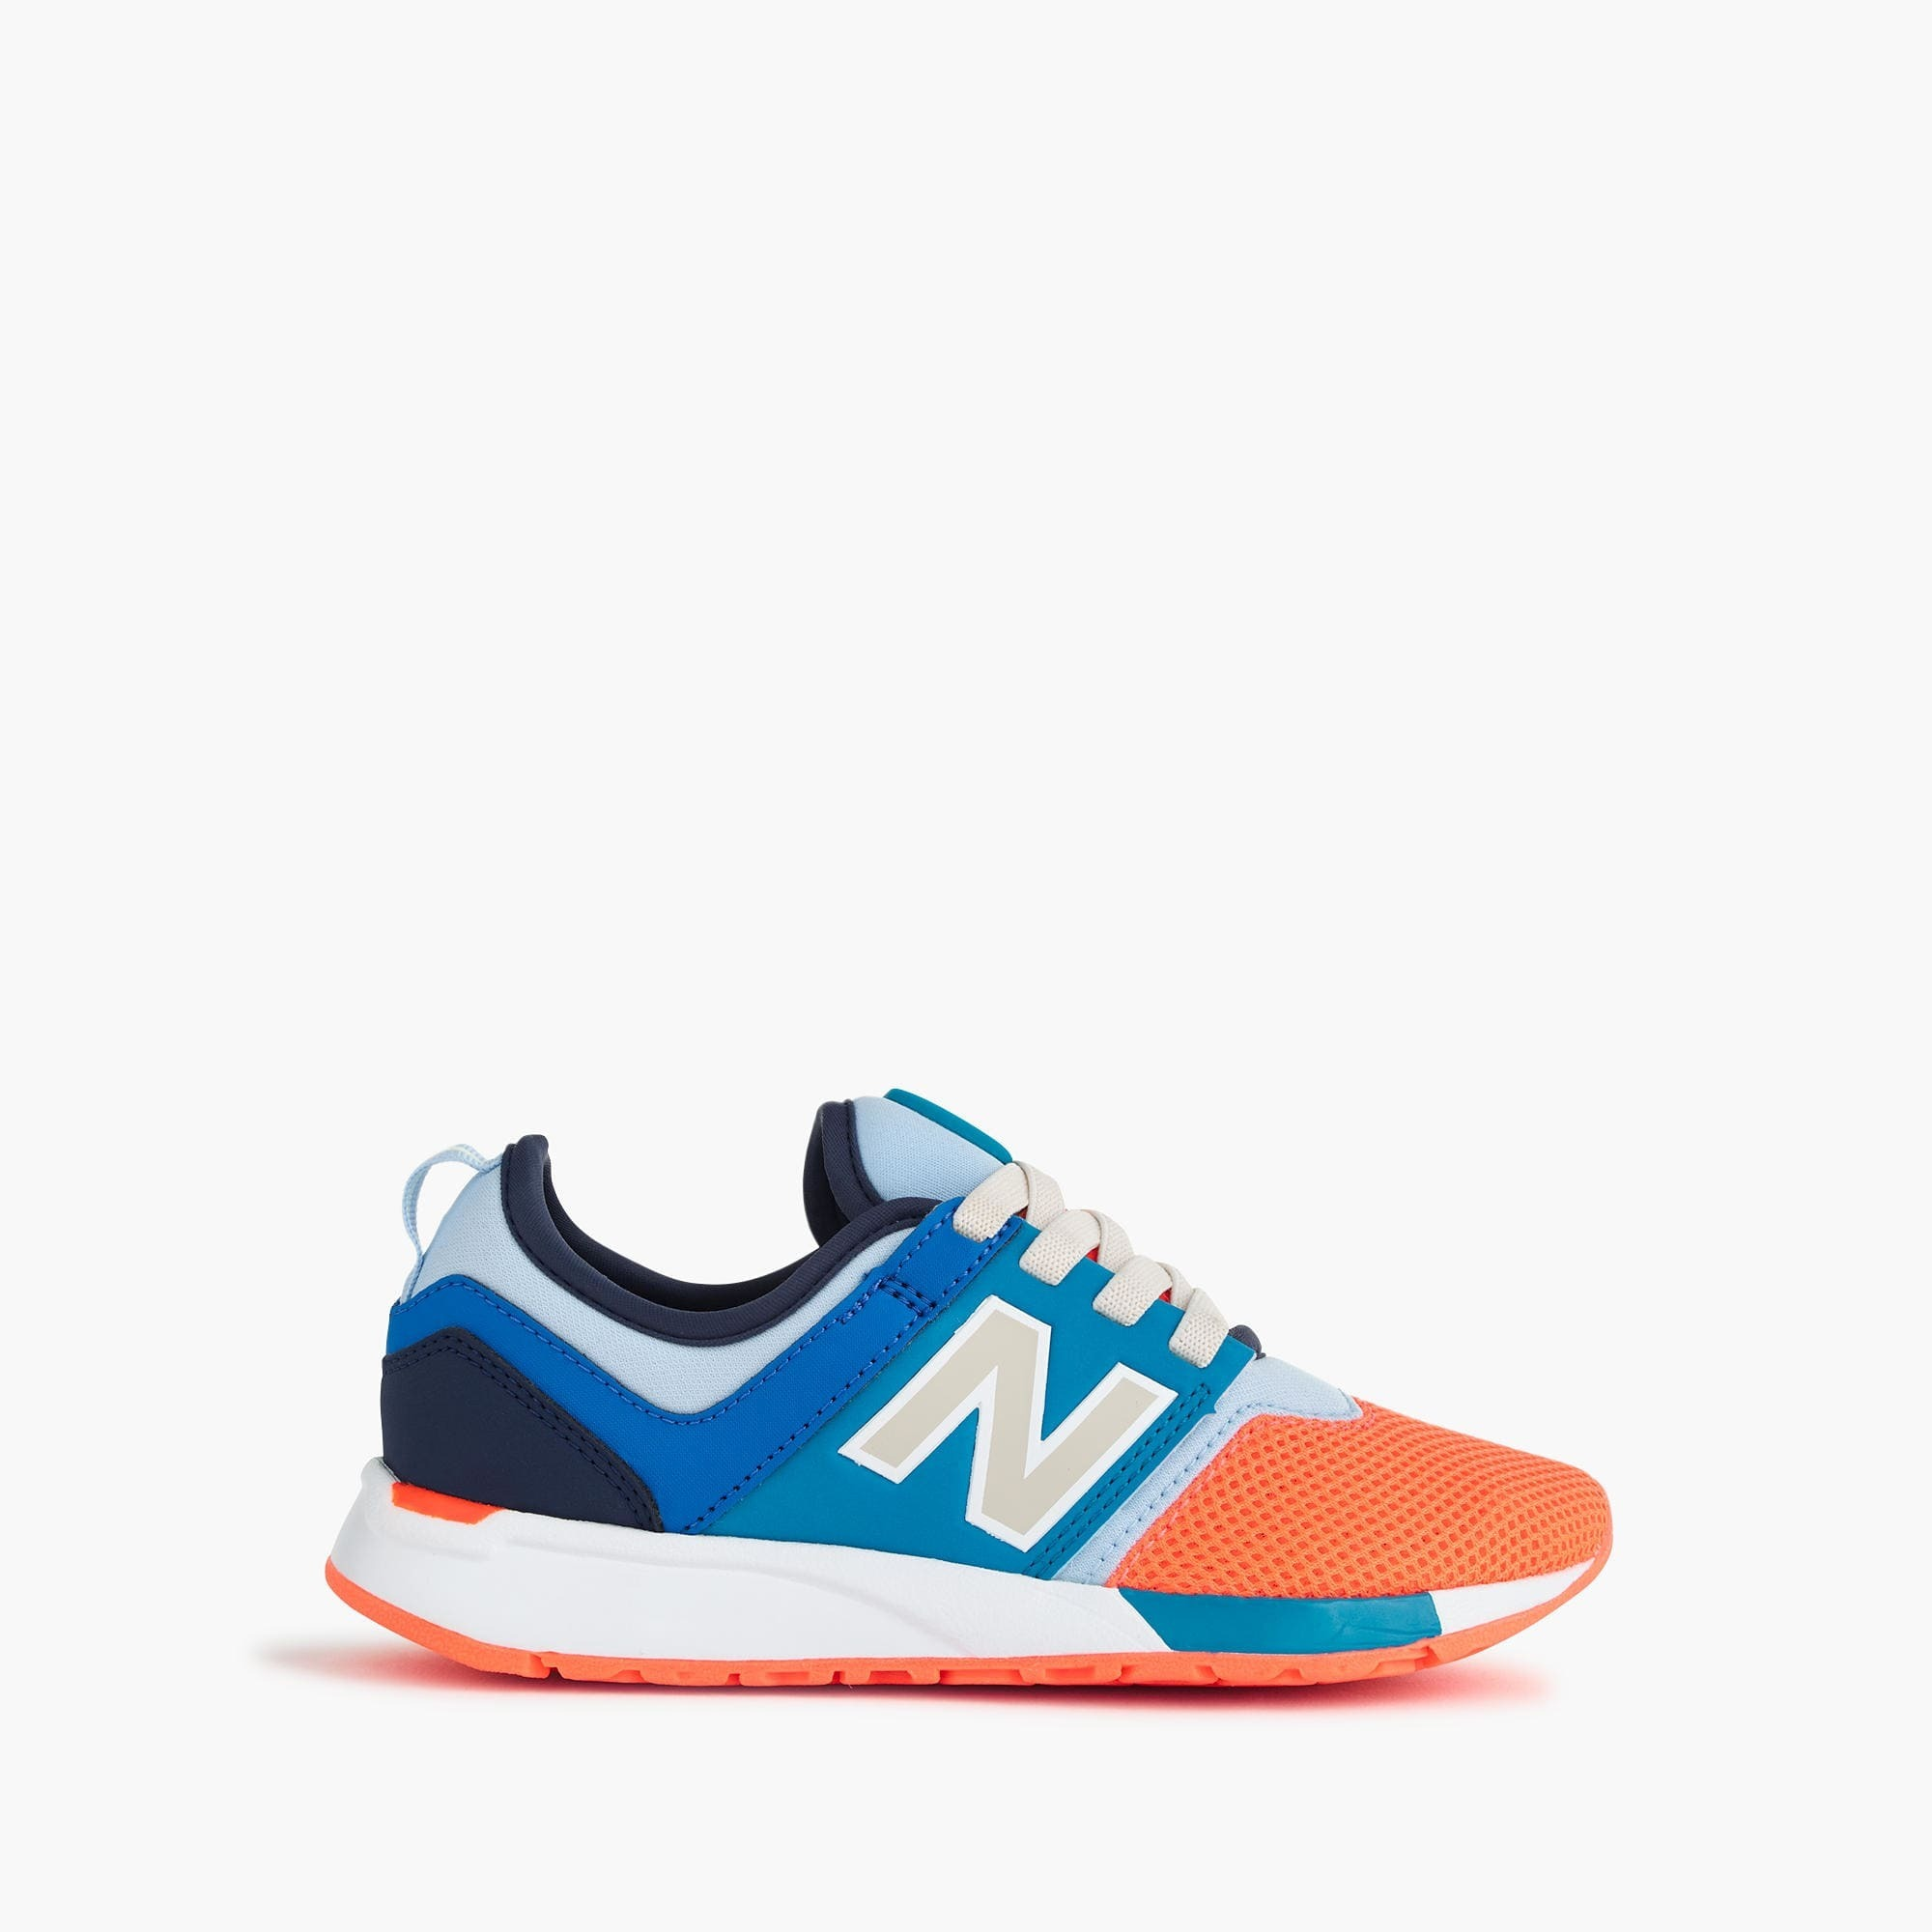 New Balance for crewcuts 24/7 sneakers with no-tie laces